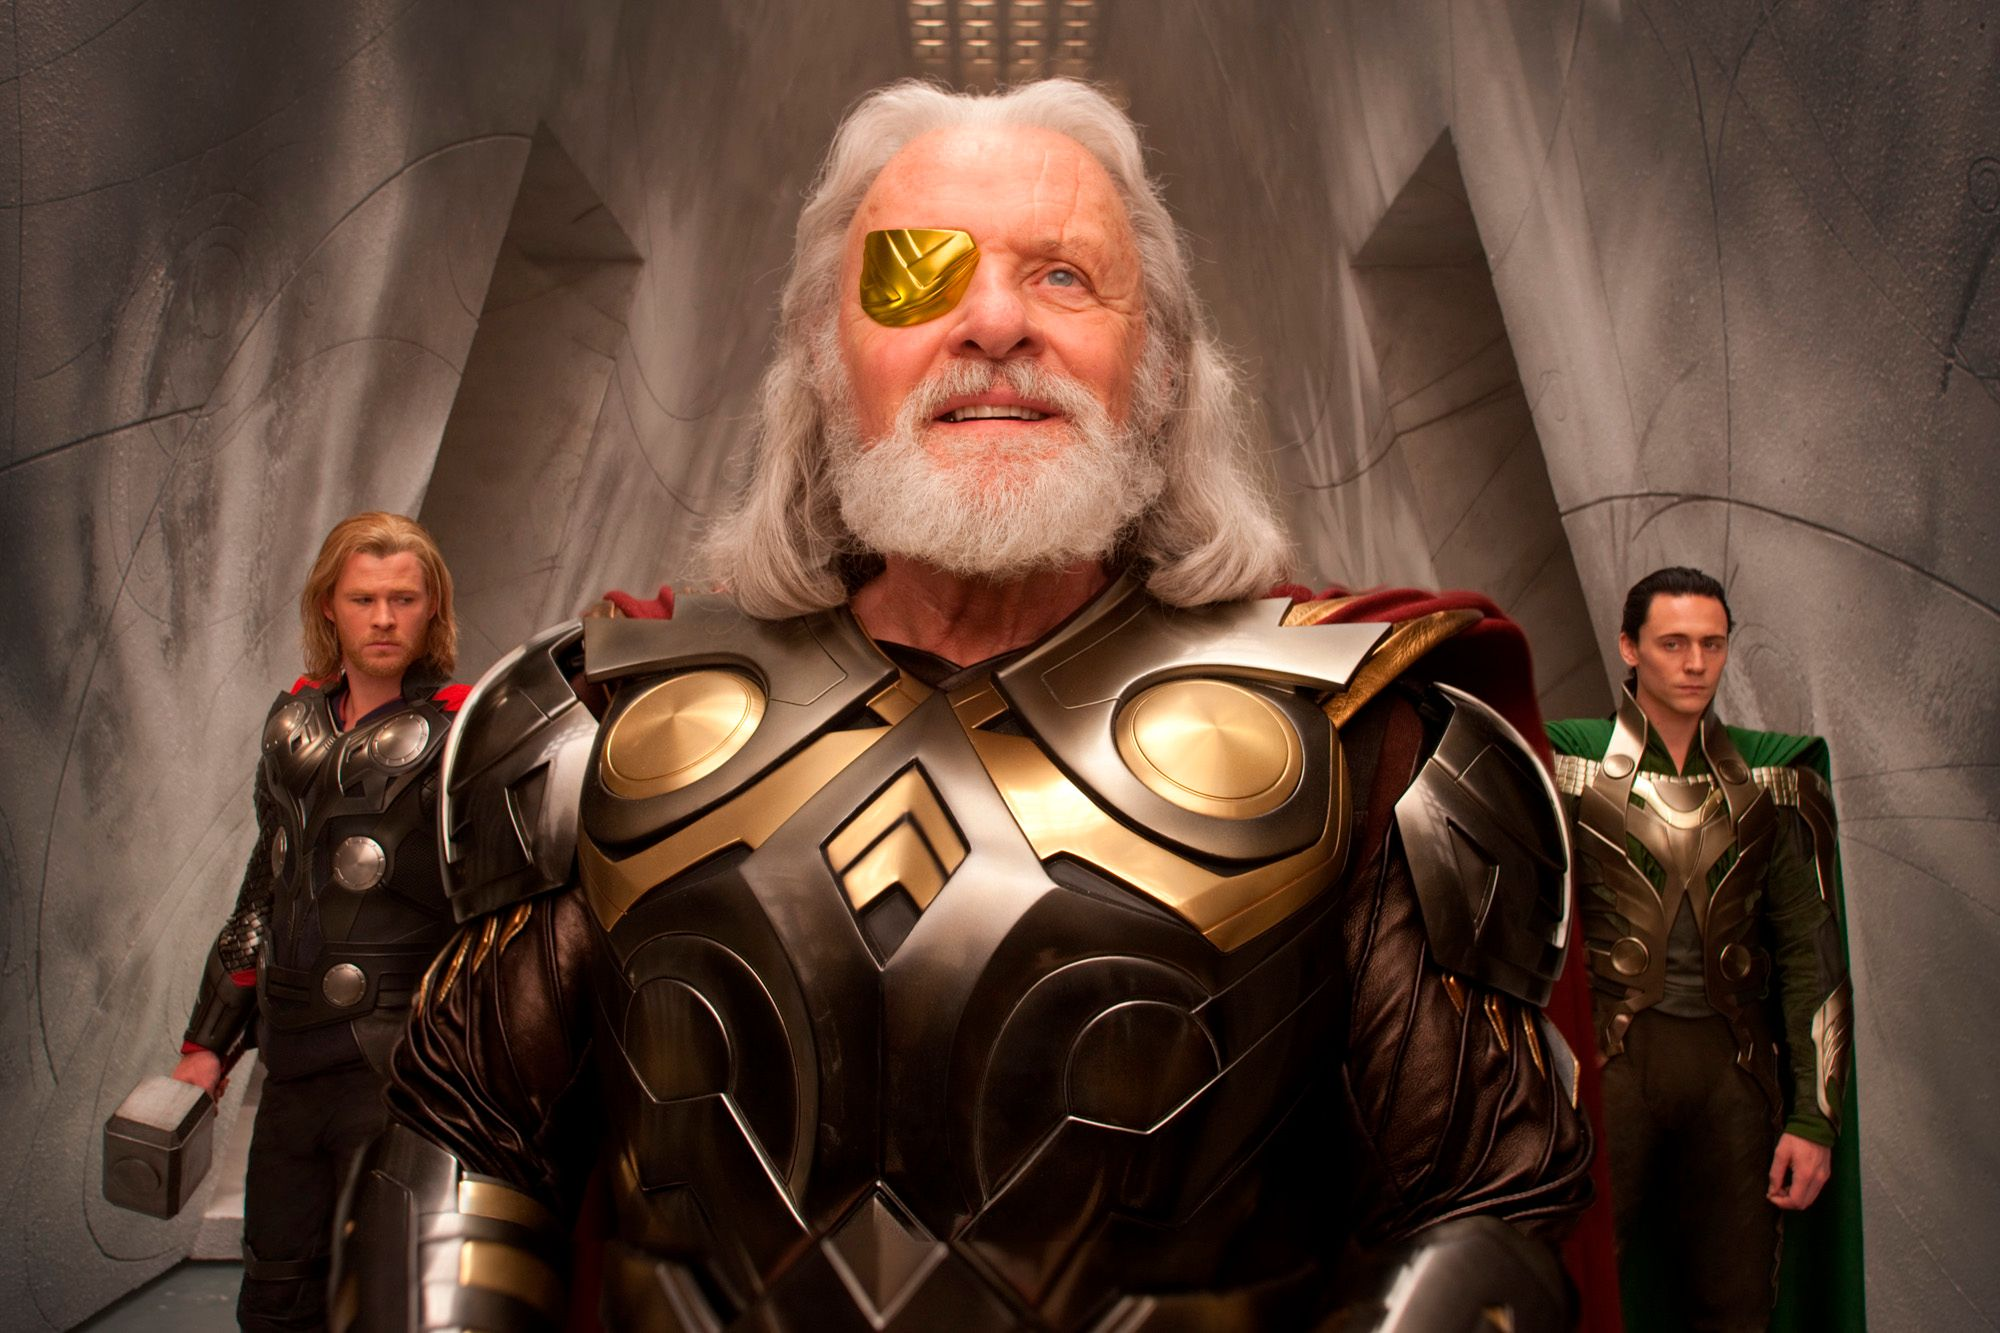 Was Mel Gibson Supposed to Be Odin?